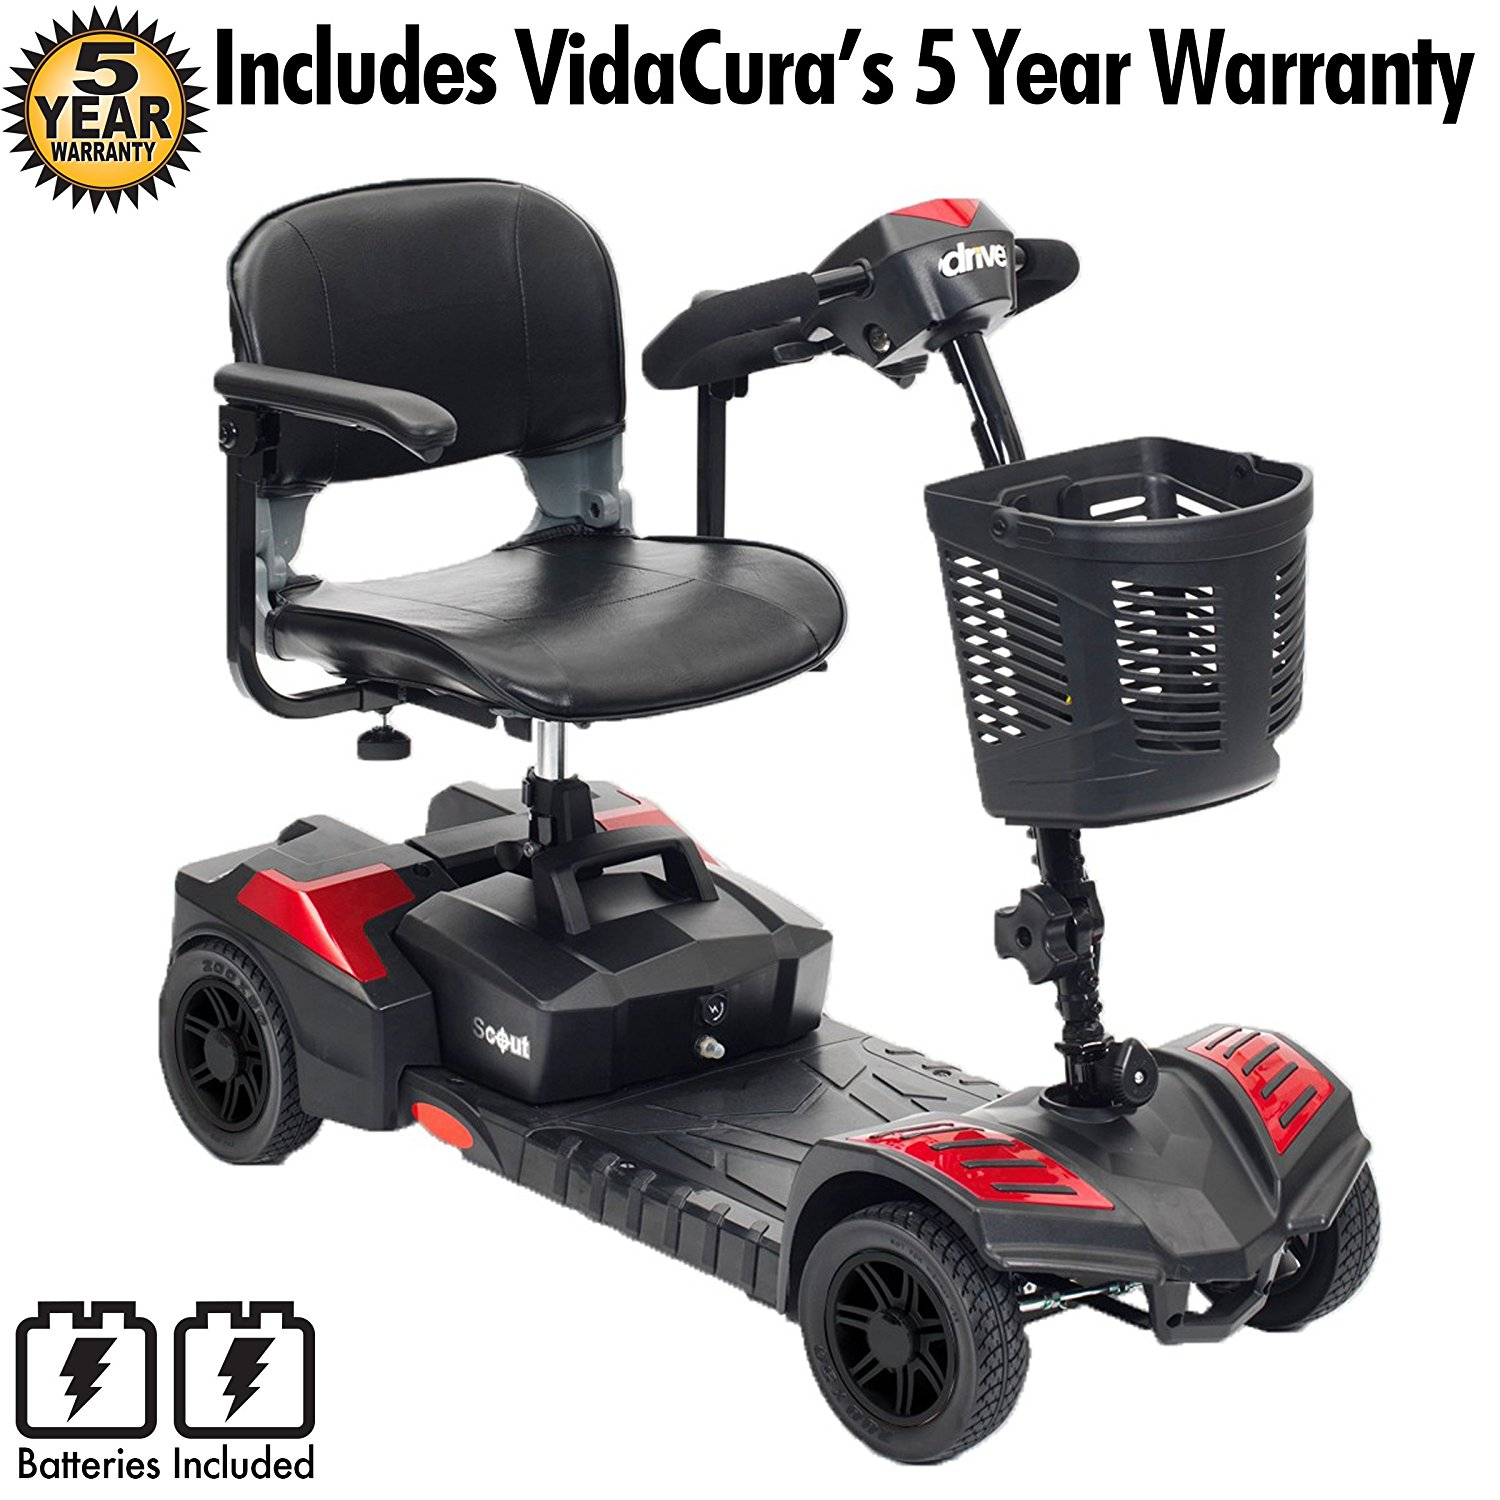 Drive Medical Spitfire Scout 4 Transportable Scooter Including VidaCura's Extended 5-Year Warranty